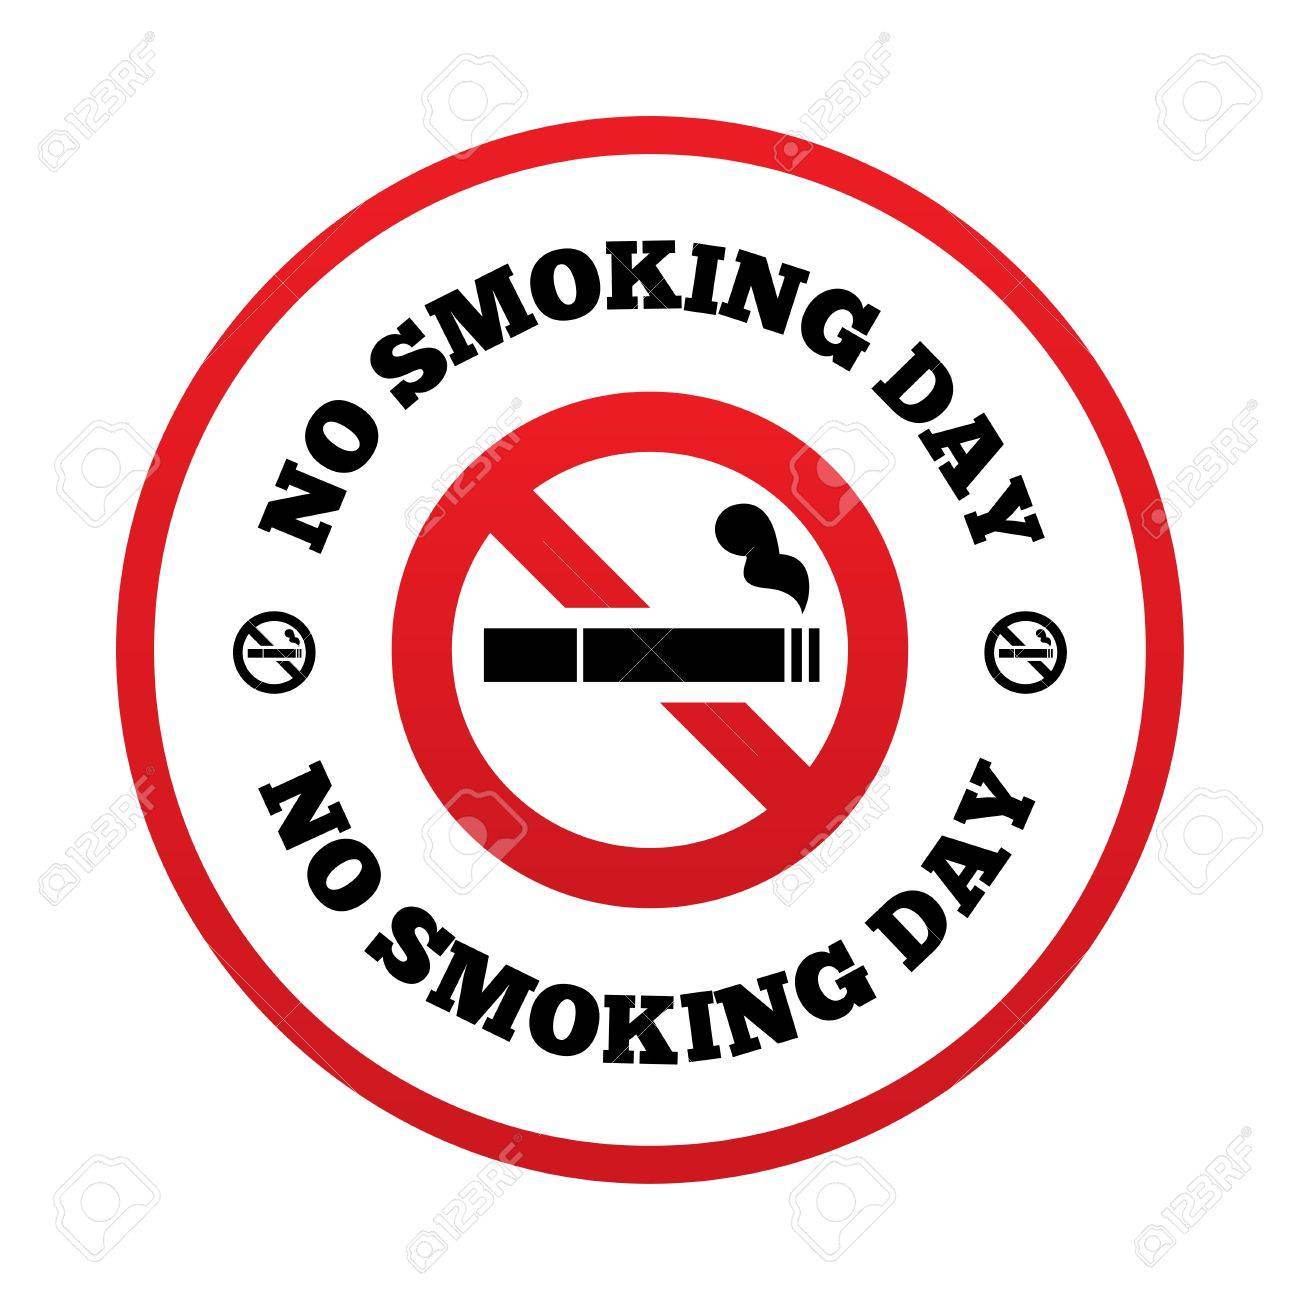 No smoking day sign quit smoking day symbol illustration stock no smoking day sign quit smoking day symbol illustration stock illustration 26081504 biocorpaavc Image collections